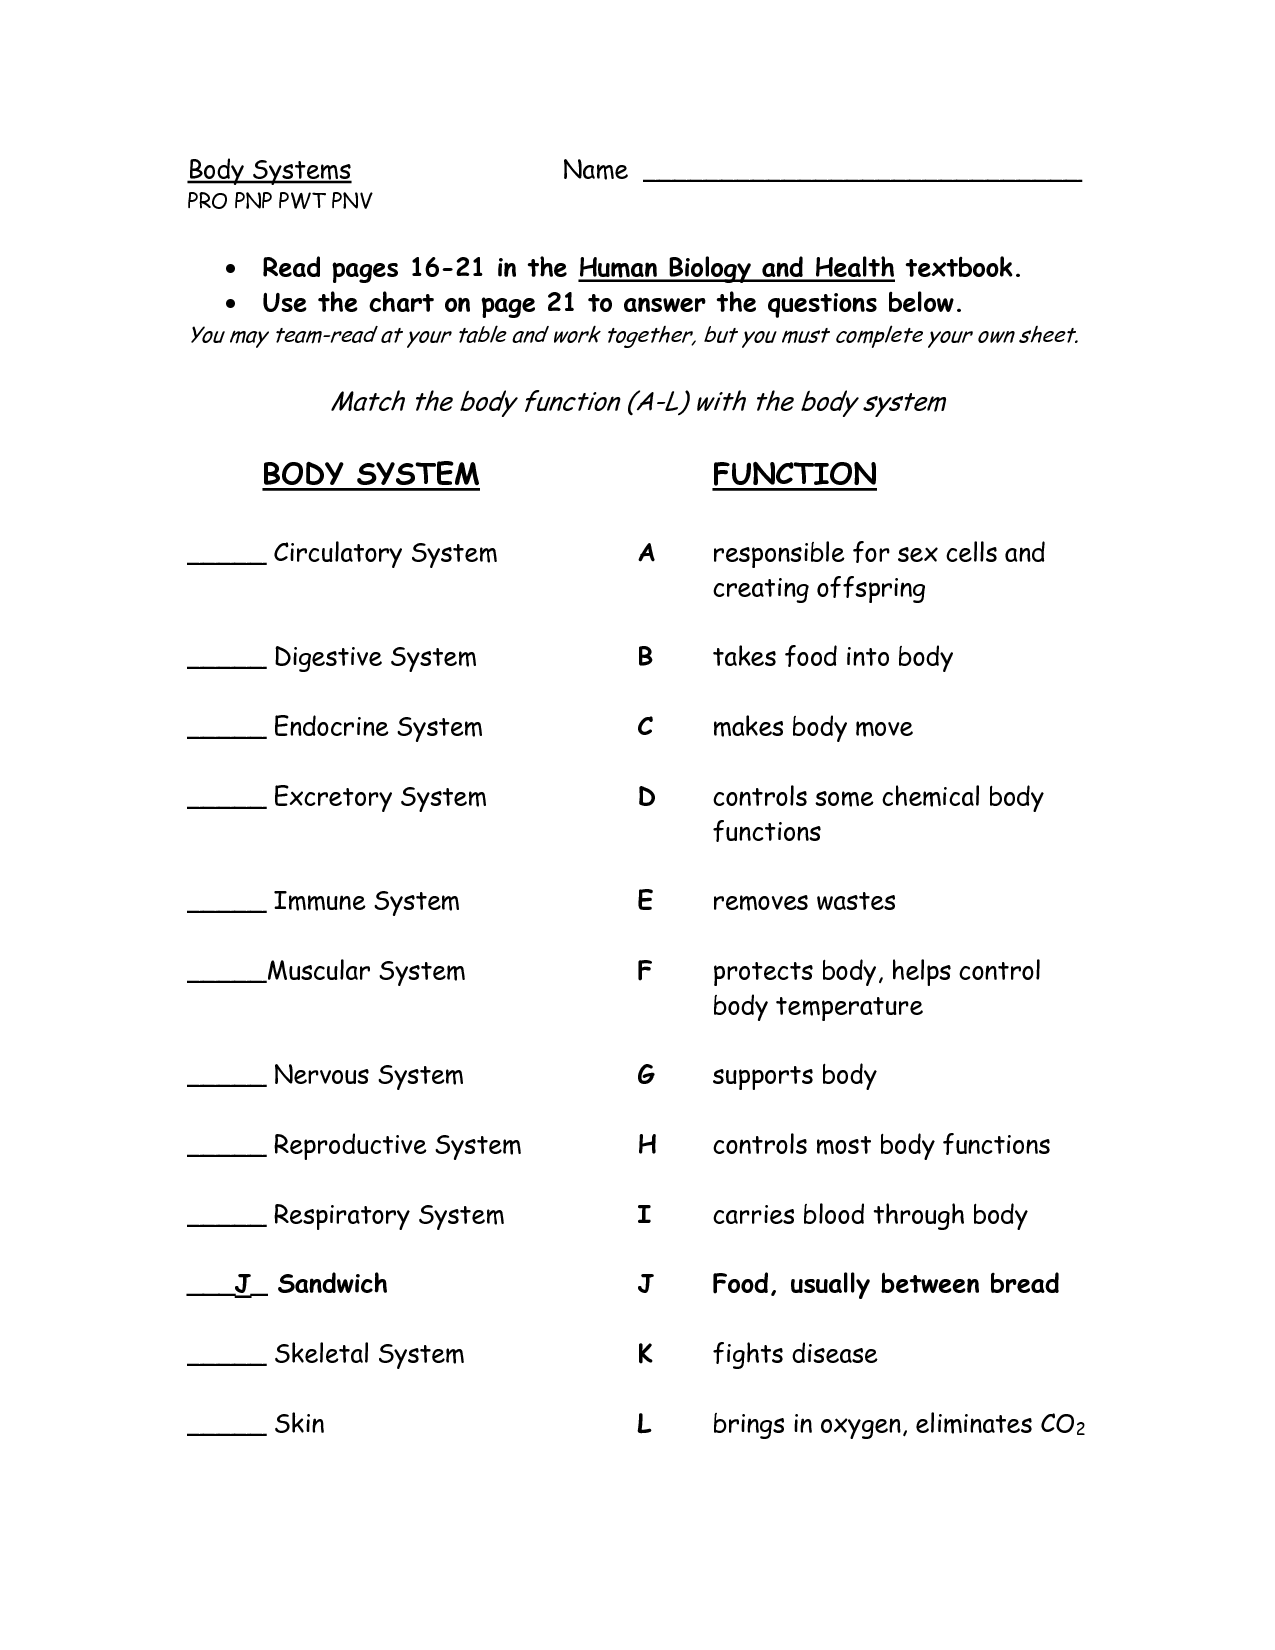 Bodysystemsandfunctionsworksheets – The Human Endocrine System Worksheet